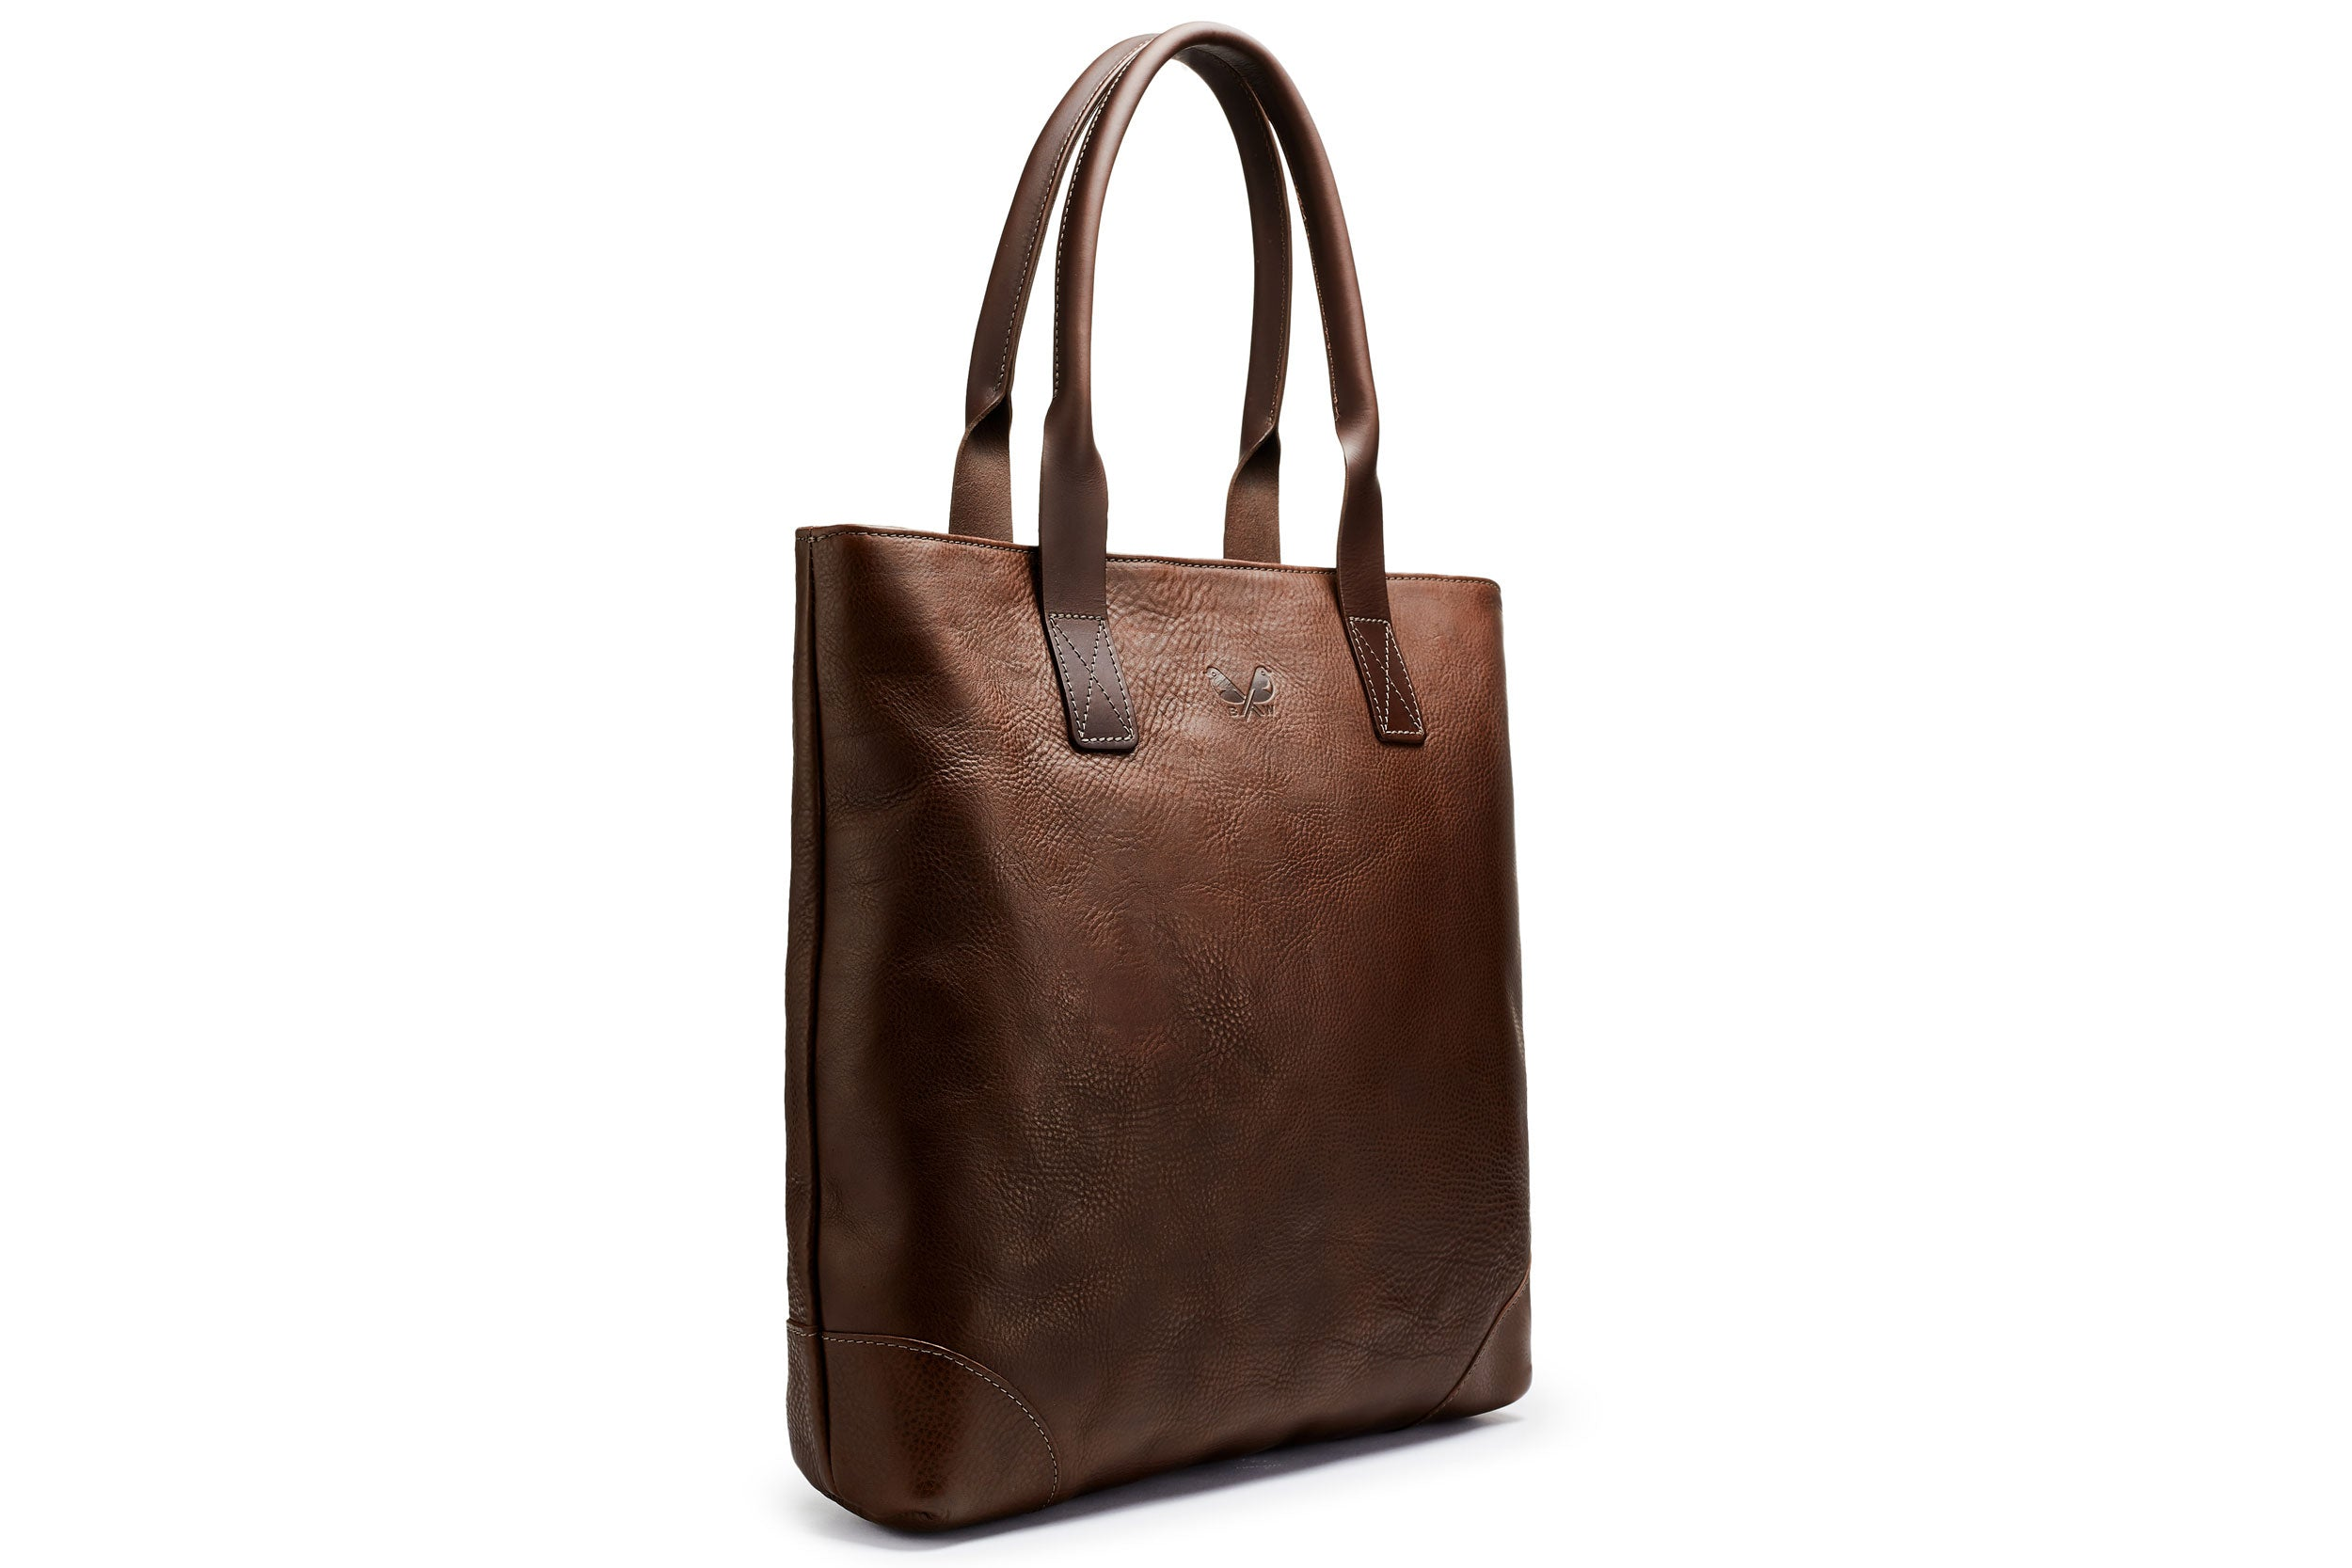 Full Leather Tote - Brown